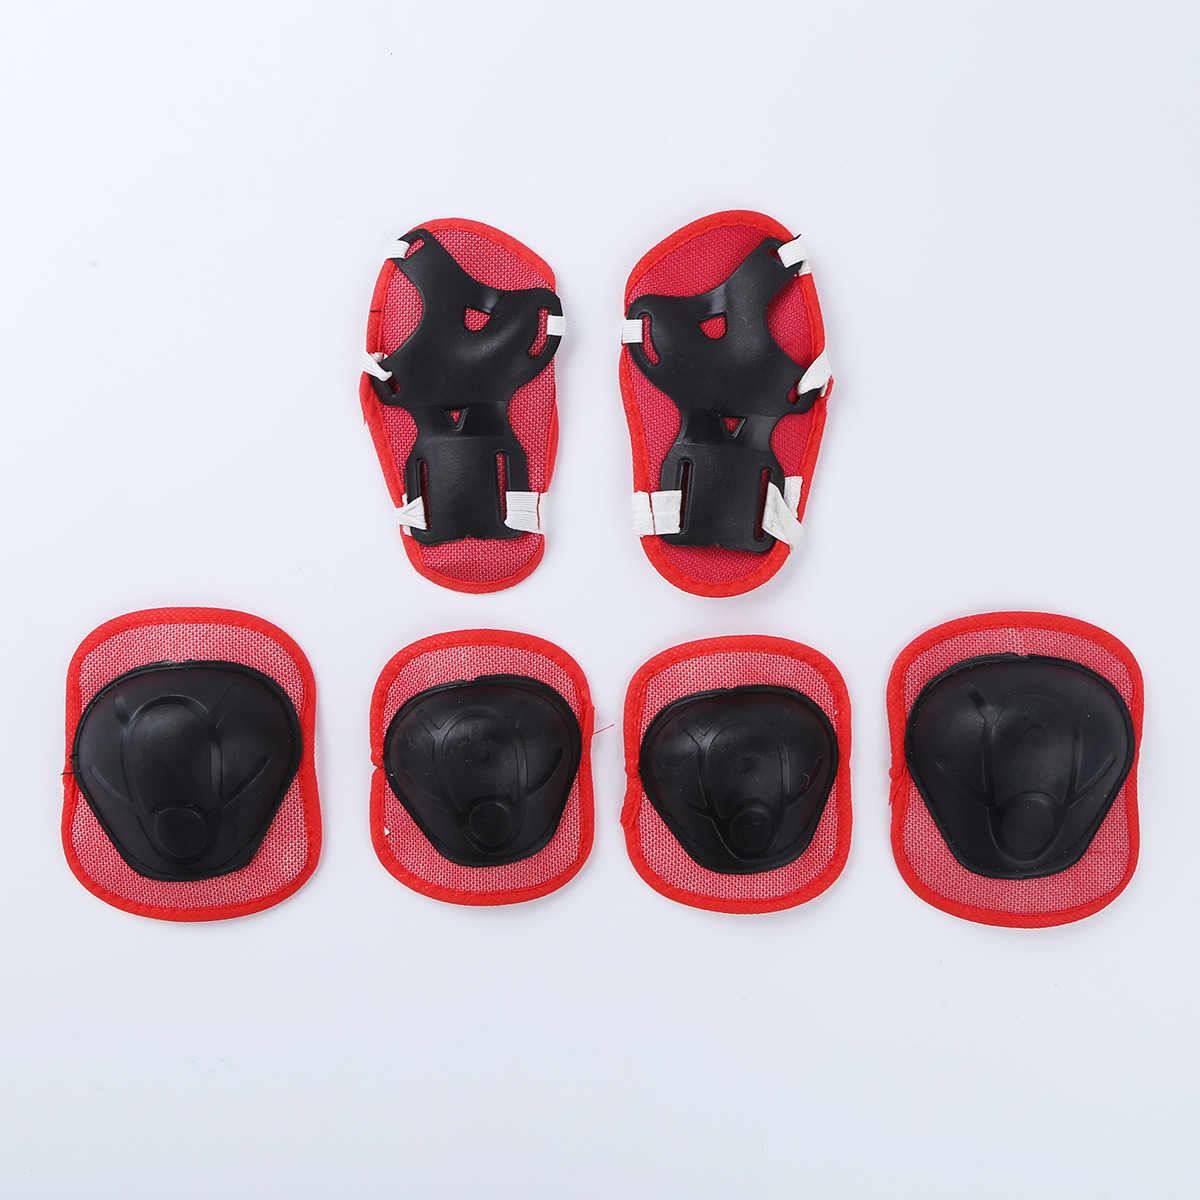 Bike Knee Pads and Elbow Pads with Wrist Safety Guards Protective Gear For Kid